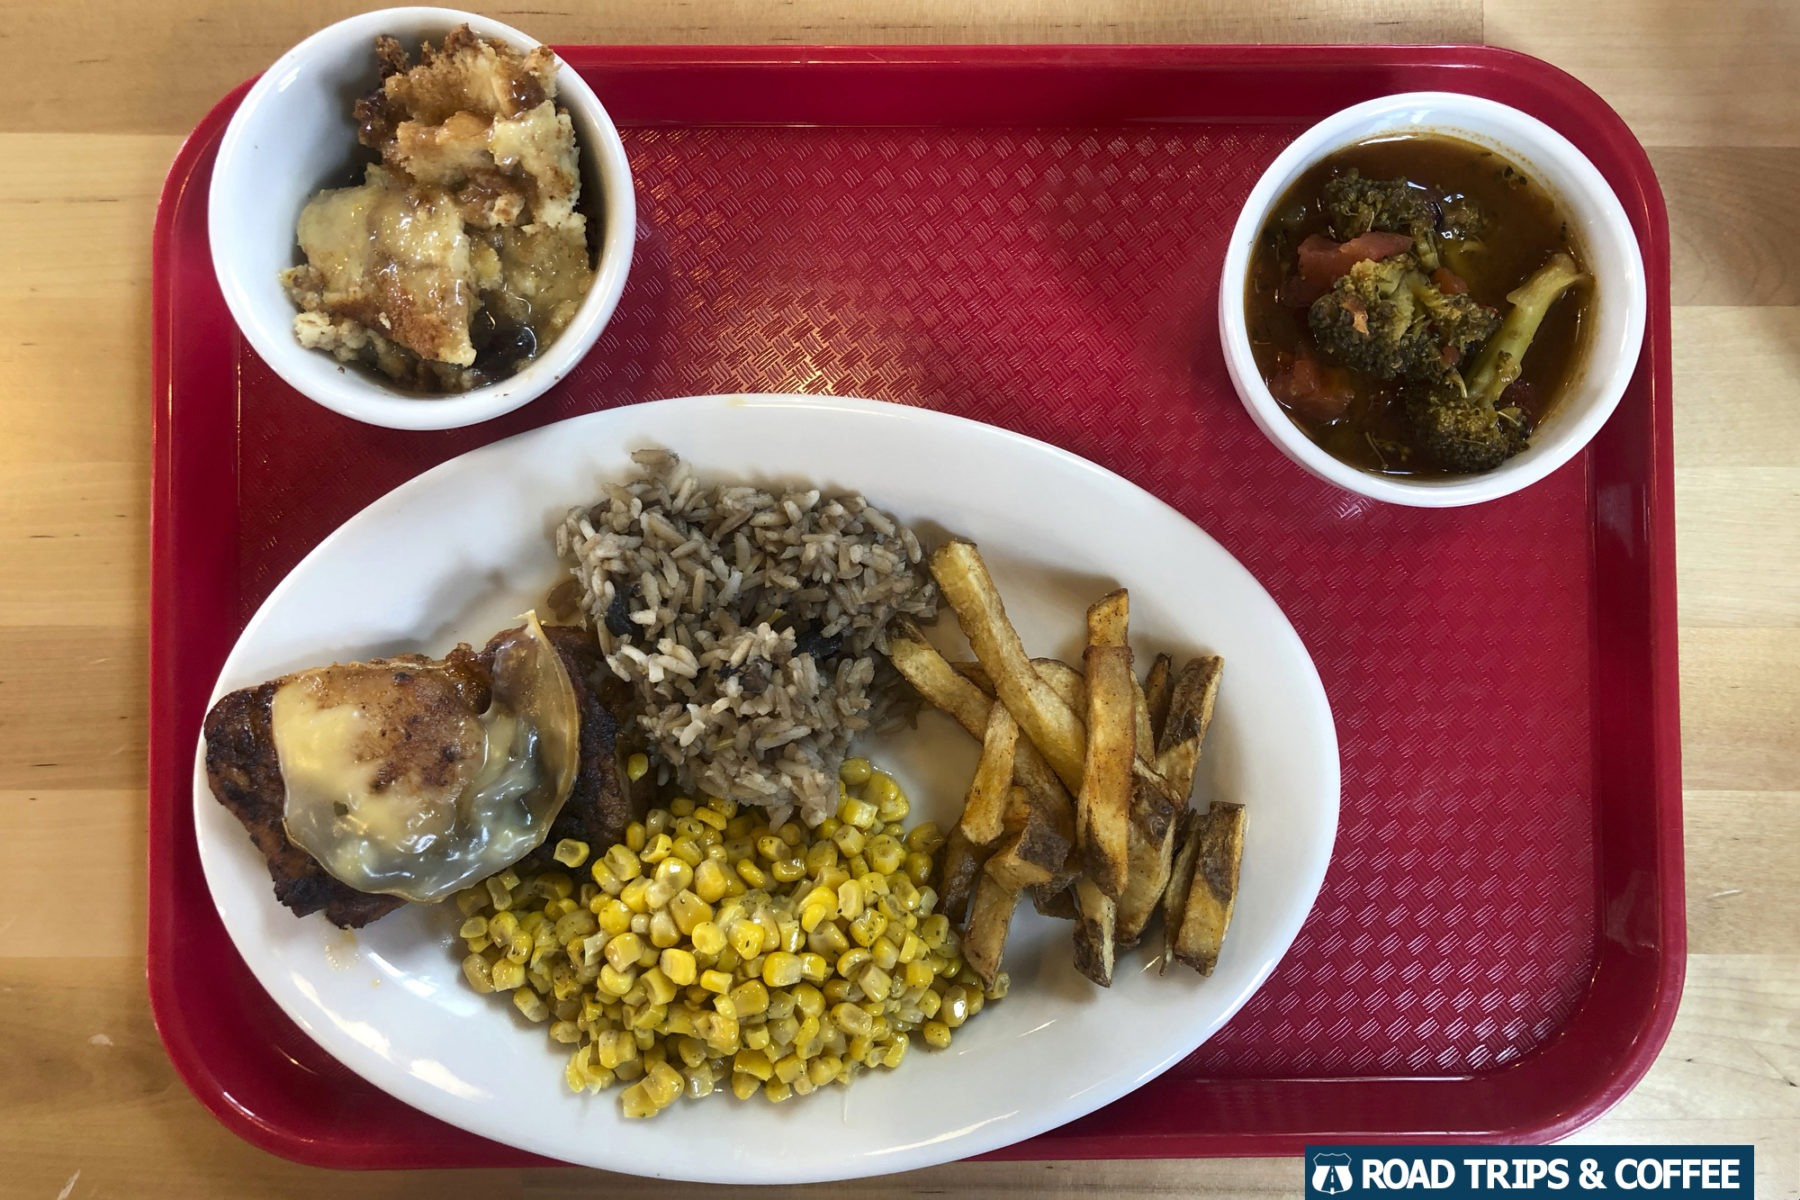 A dinner tray loaded with baked chicken, corn, rice, and banana pudding from the Open Door Cafe in Wytheville, Virginia